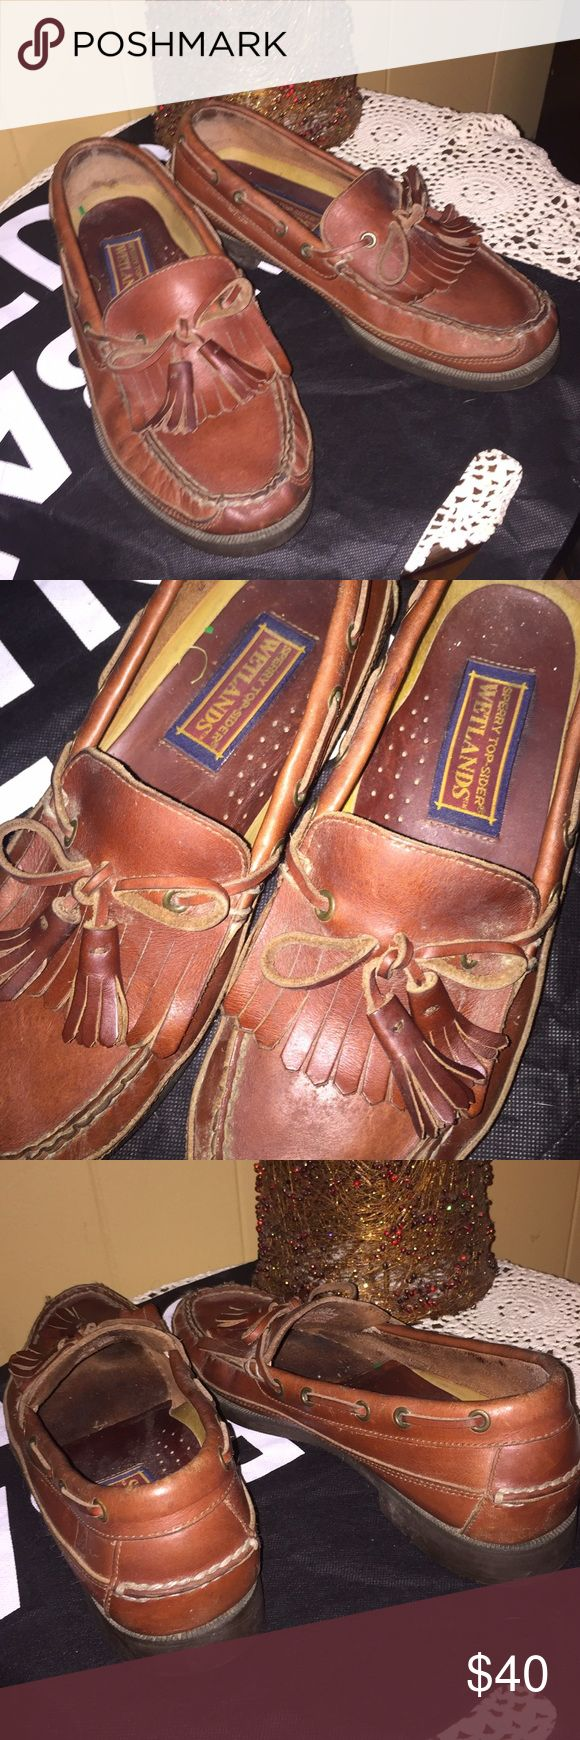 Sperry's Top Siders Boat Shoes. Preppy An awesome pair of genuine leather boat shoes! Preppy, Sperry's Top Siders. Men's size 8.5 (also fit women's size 10-10.5). Great condition! Sperry Top-Sider Shoes Boat Shoes